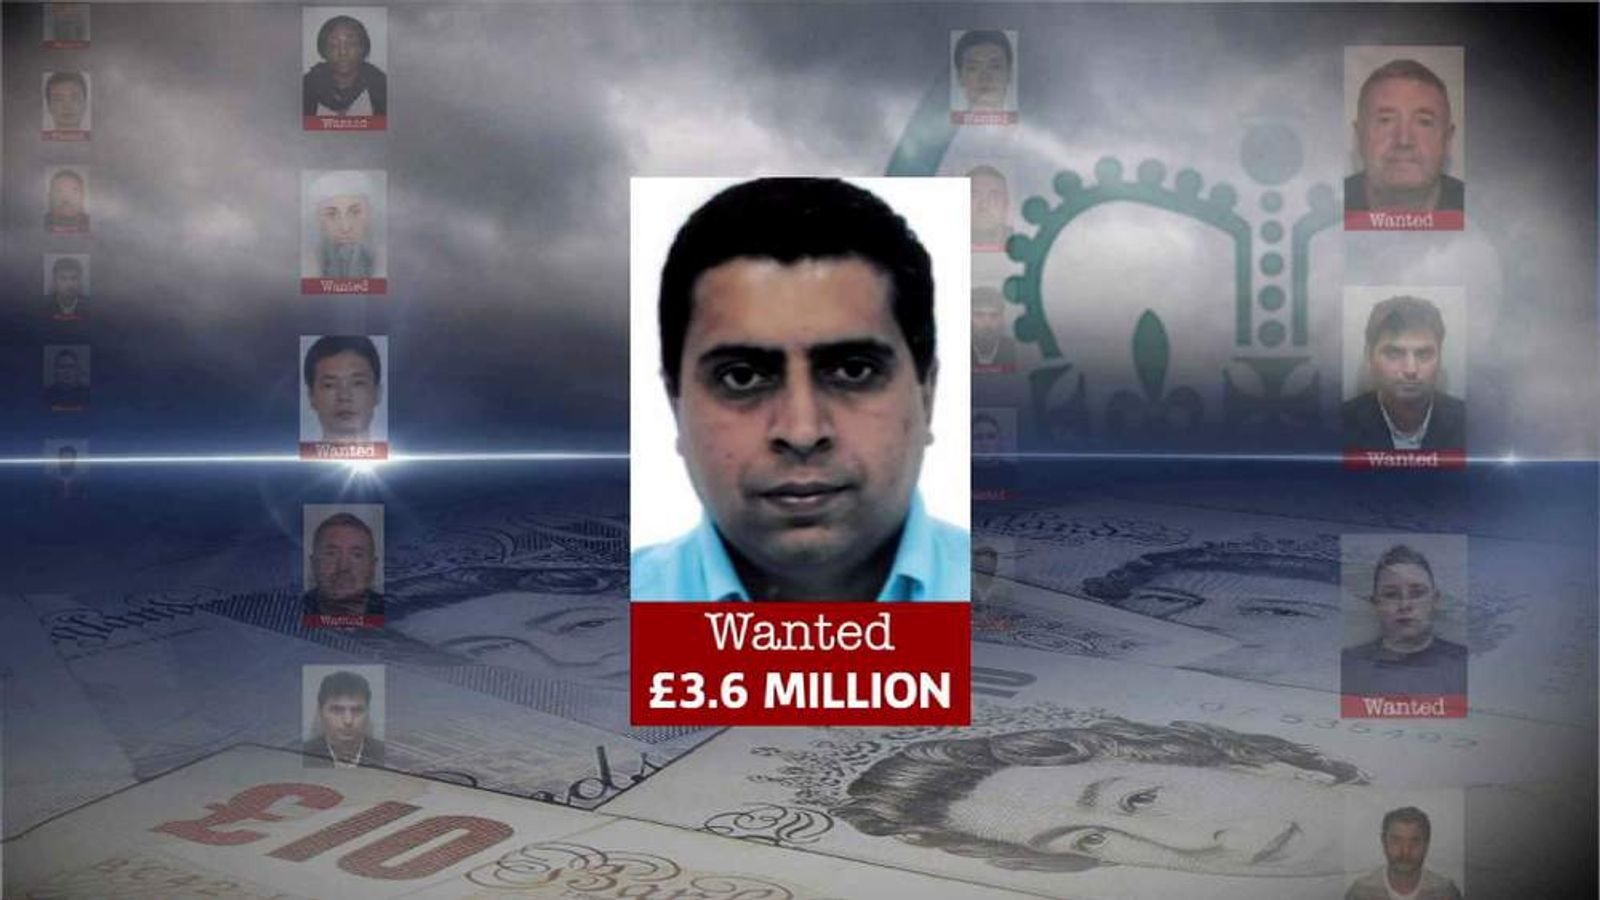 Sumir Soni - wanted for alleged tax evasion.